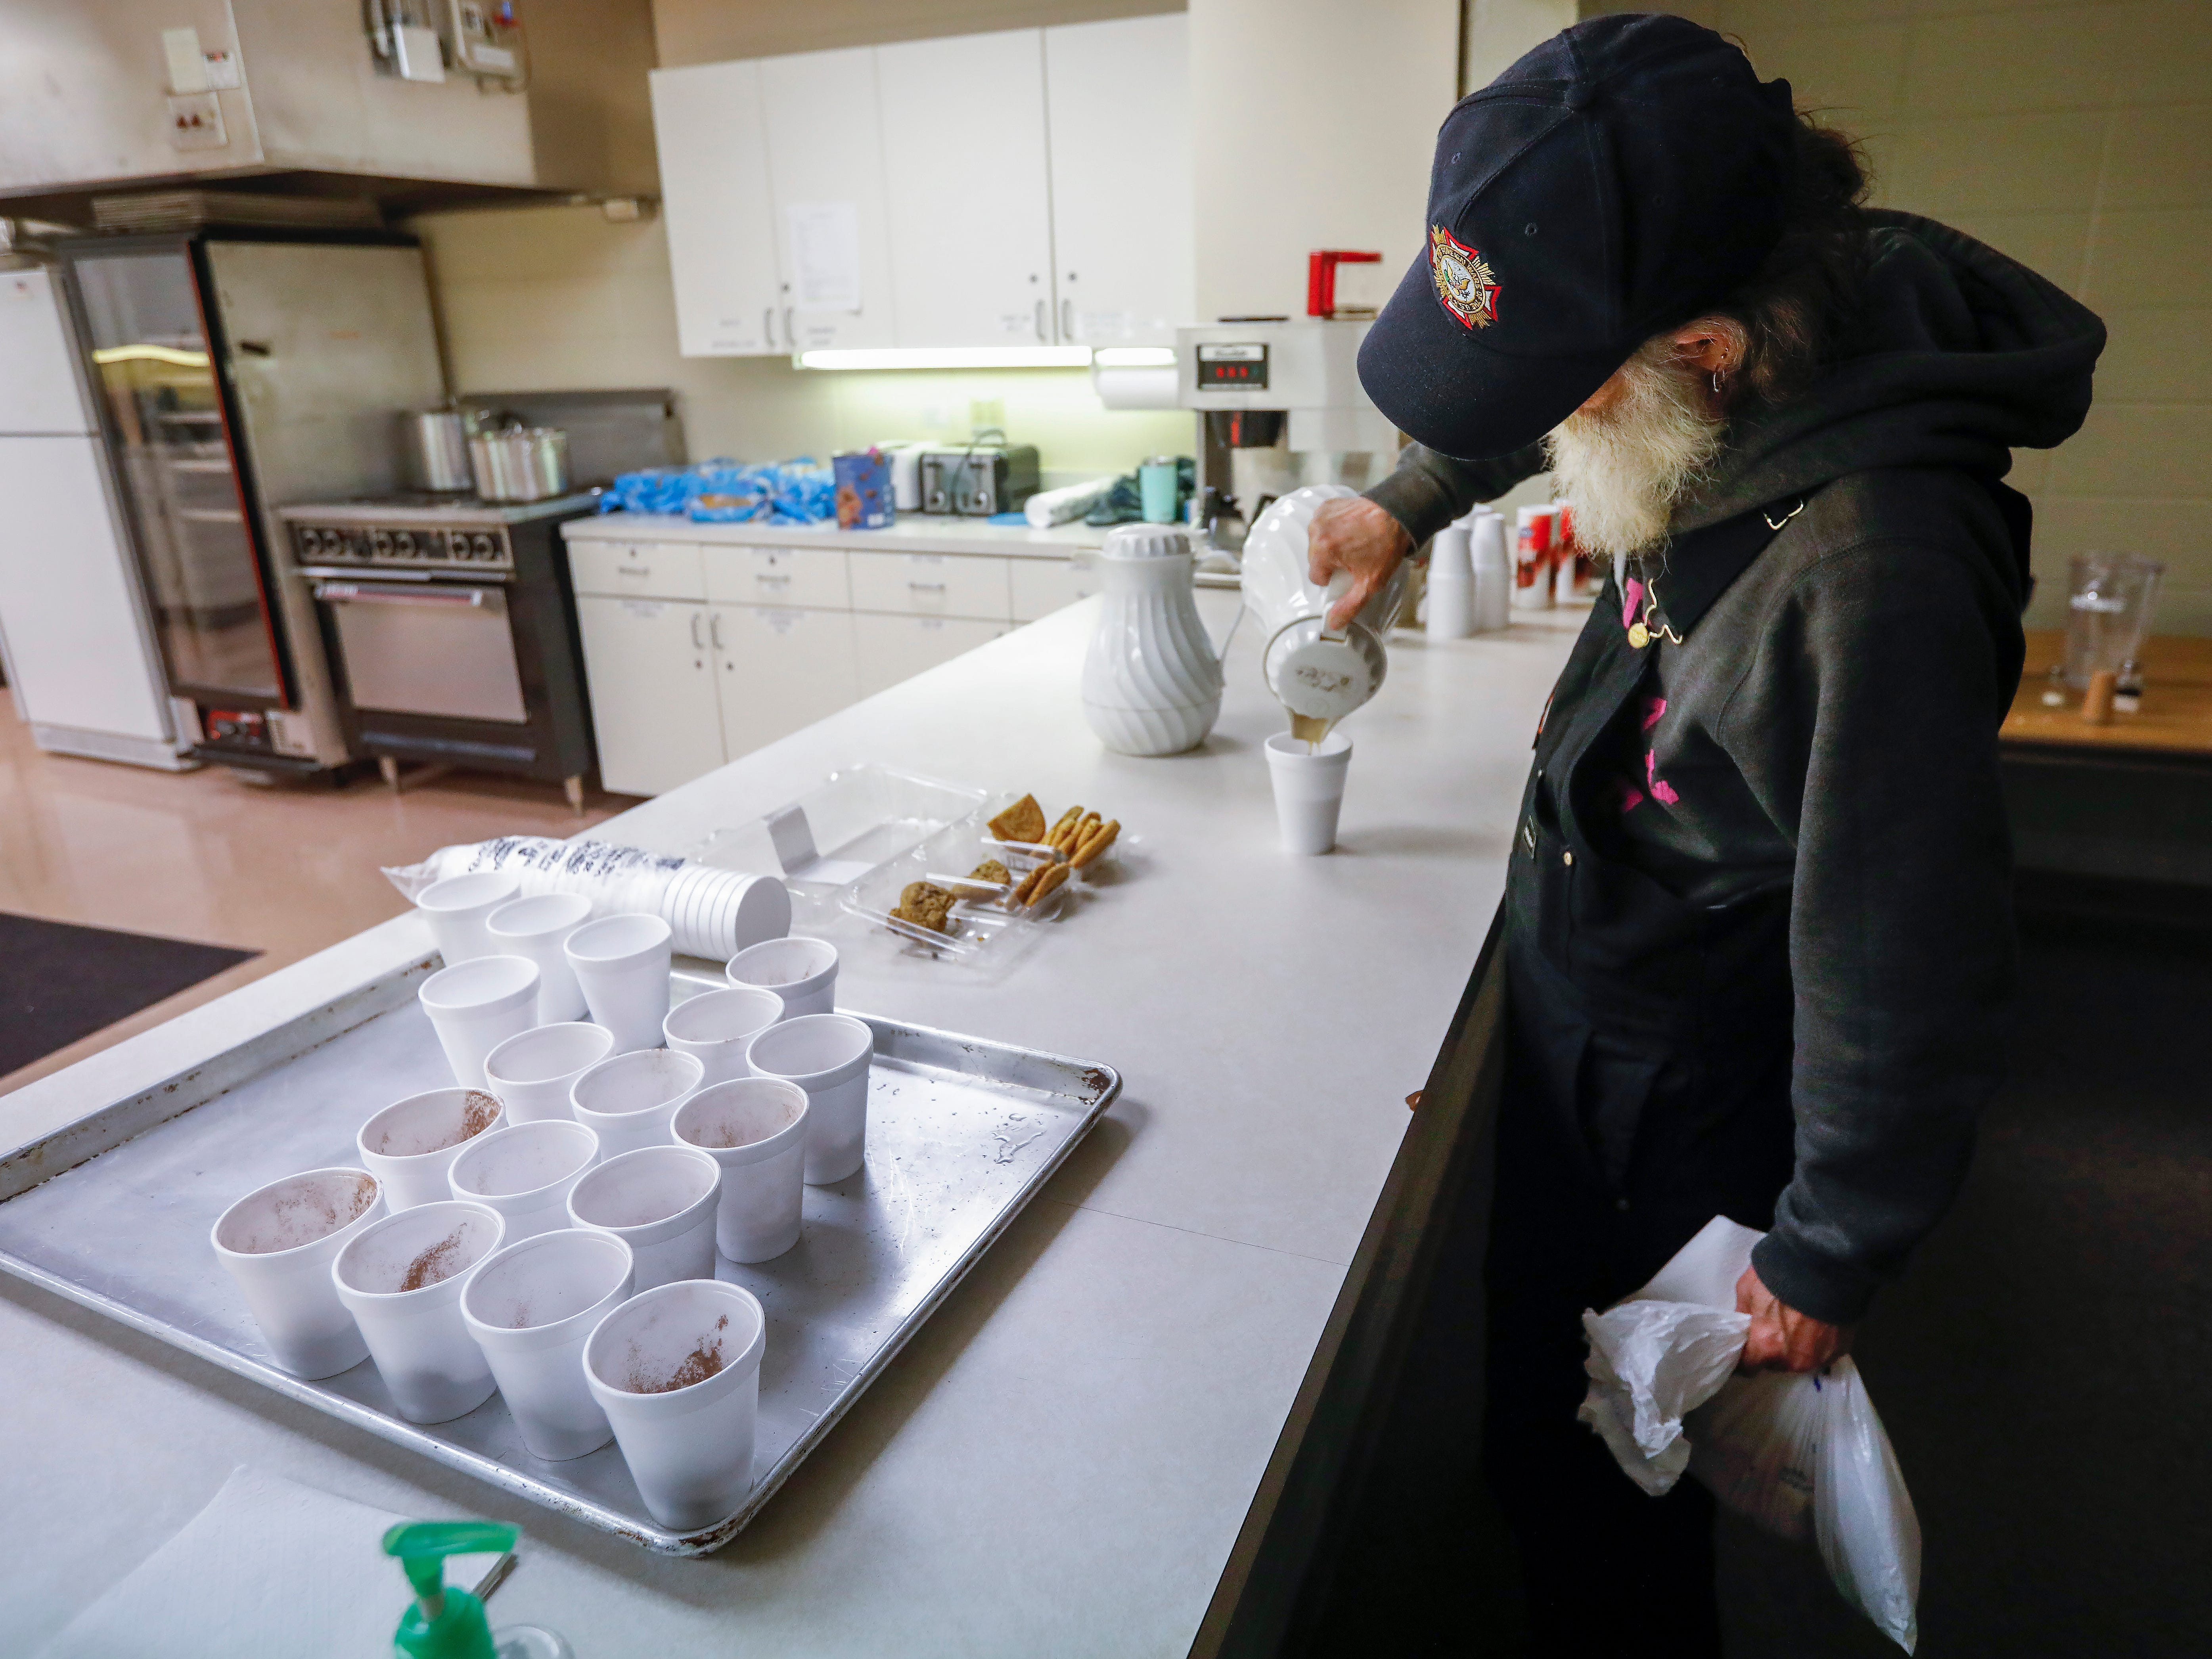 Gil Rife, who has been homeless for 3 years, pours a cup of coffee at the E. Sunshine Church of Christ on Wednesday, Feb. 20, 2019. Rife was spending the night at the church which opened it's doors as a warming center after temperatures dropped below freezing.